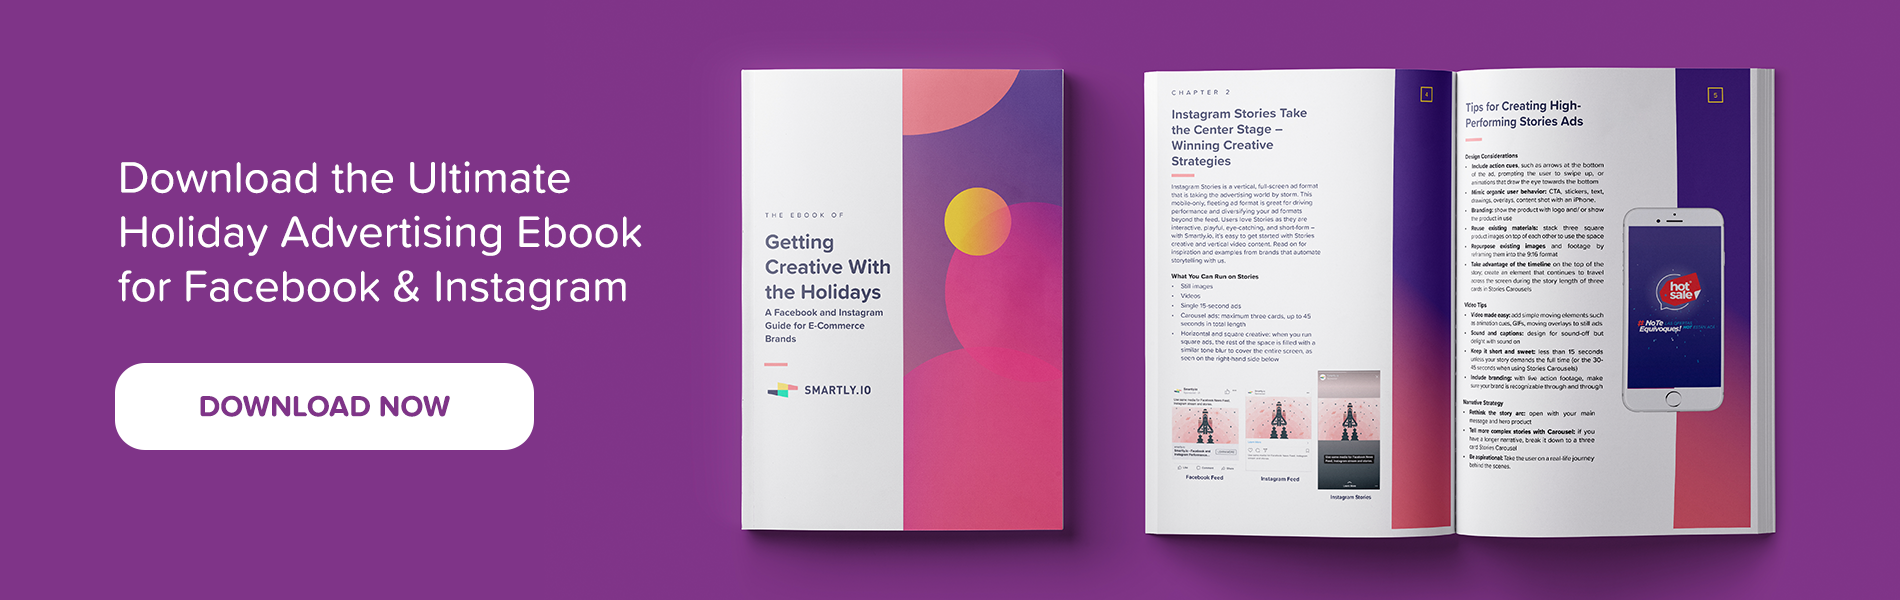 Download the Ultimate Holiday Advertising Ebook